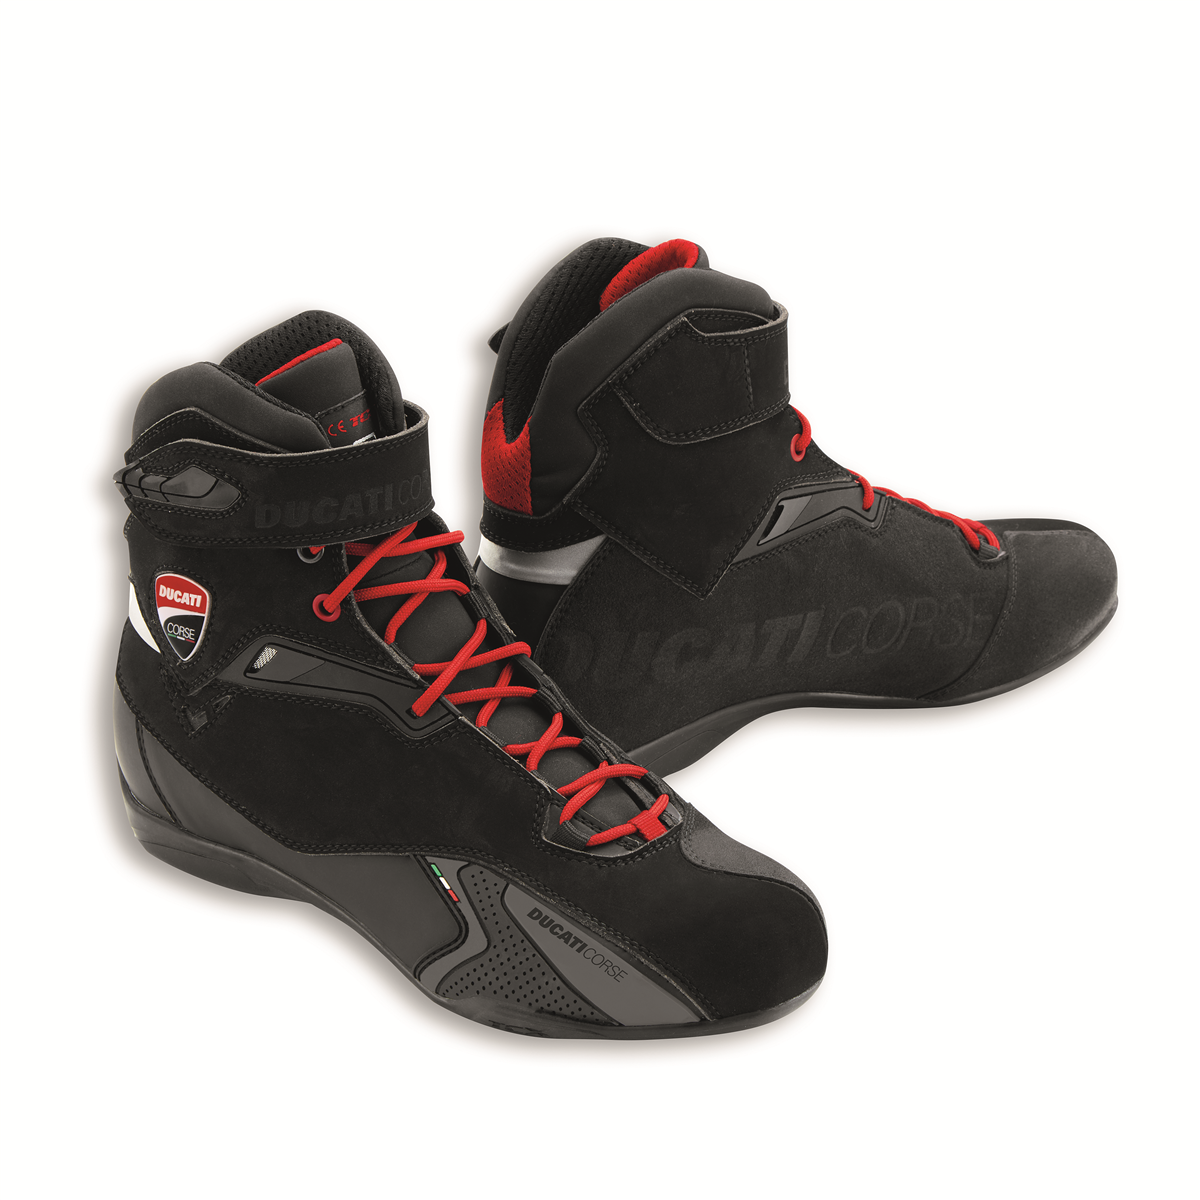 Ducati Corse Shoes